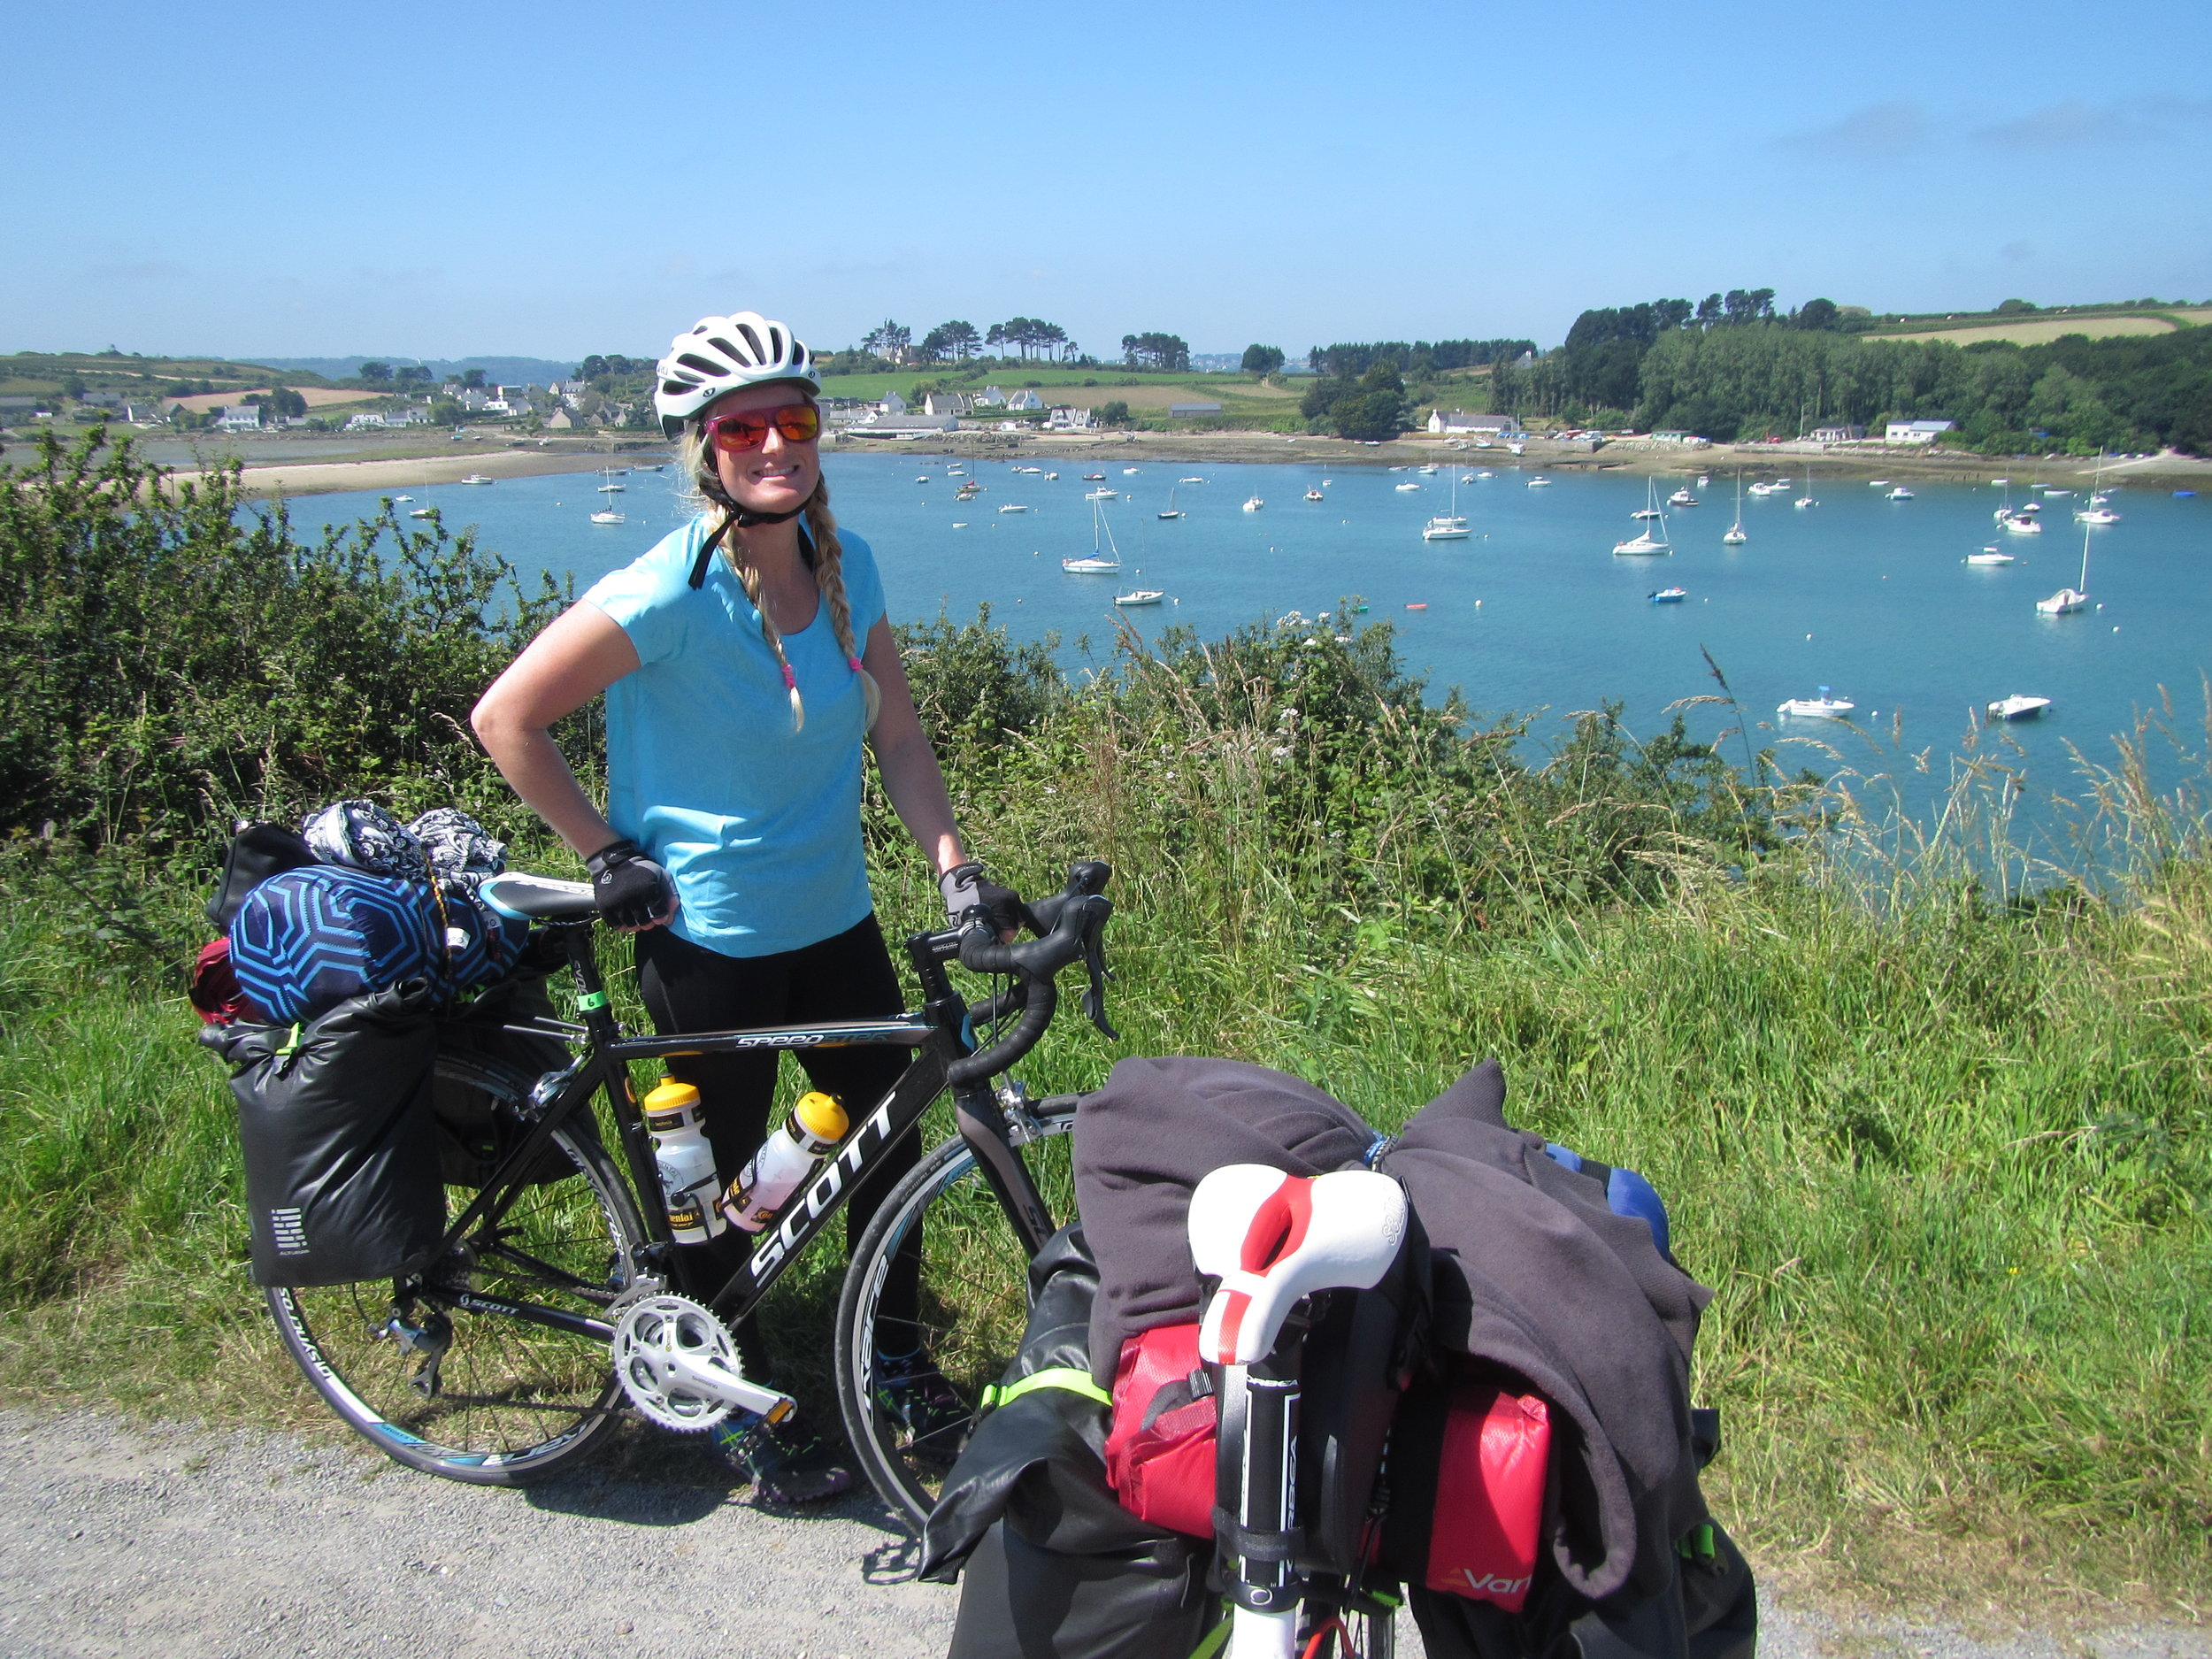 FRANCE | 3 day cycle touring around Brittany. We bought fresh pastries from the bakery every morning, slept in bivvy bags on the beach and cycled through villages we never would have experienced using another form of transport.